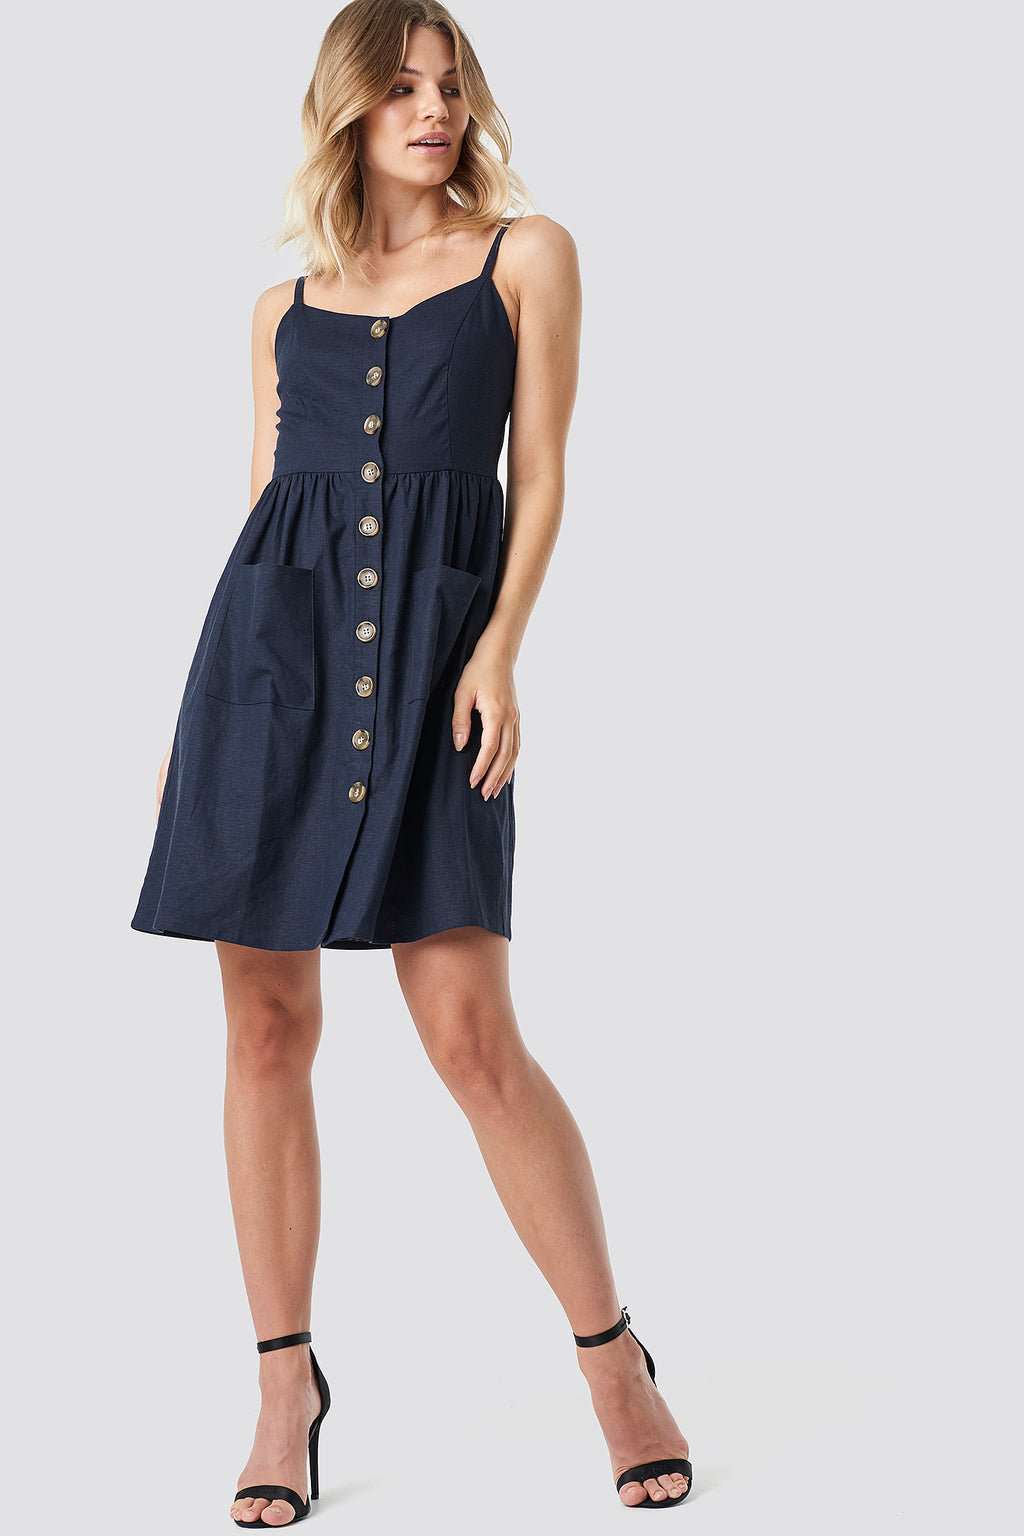 NA-KD Linen Look Dress Dark Navy